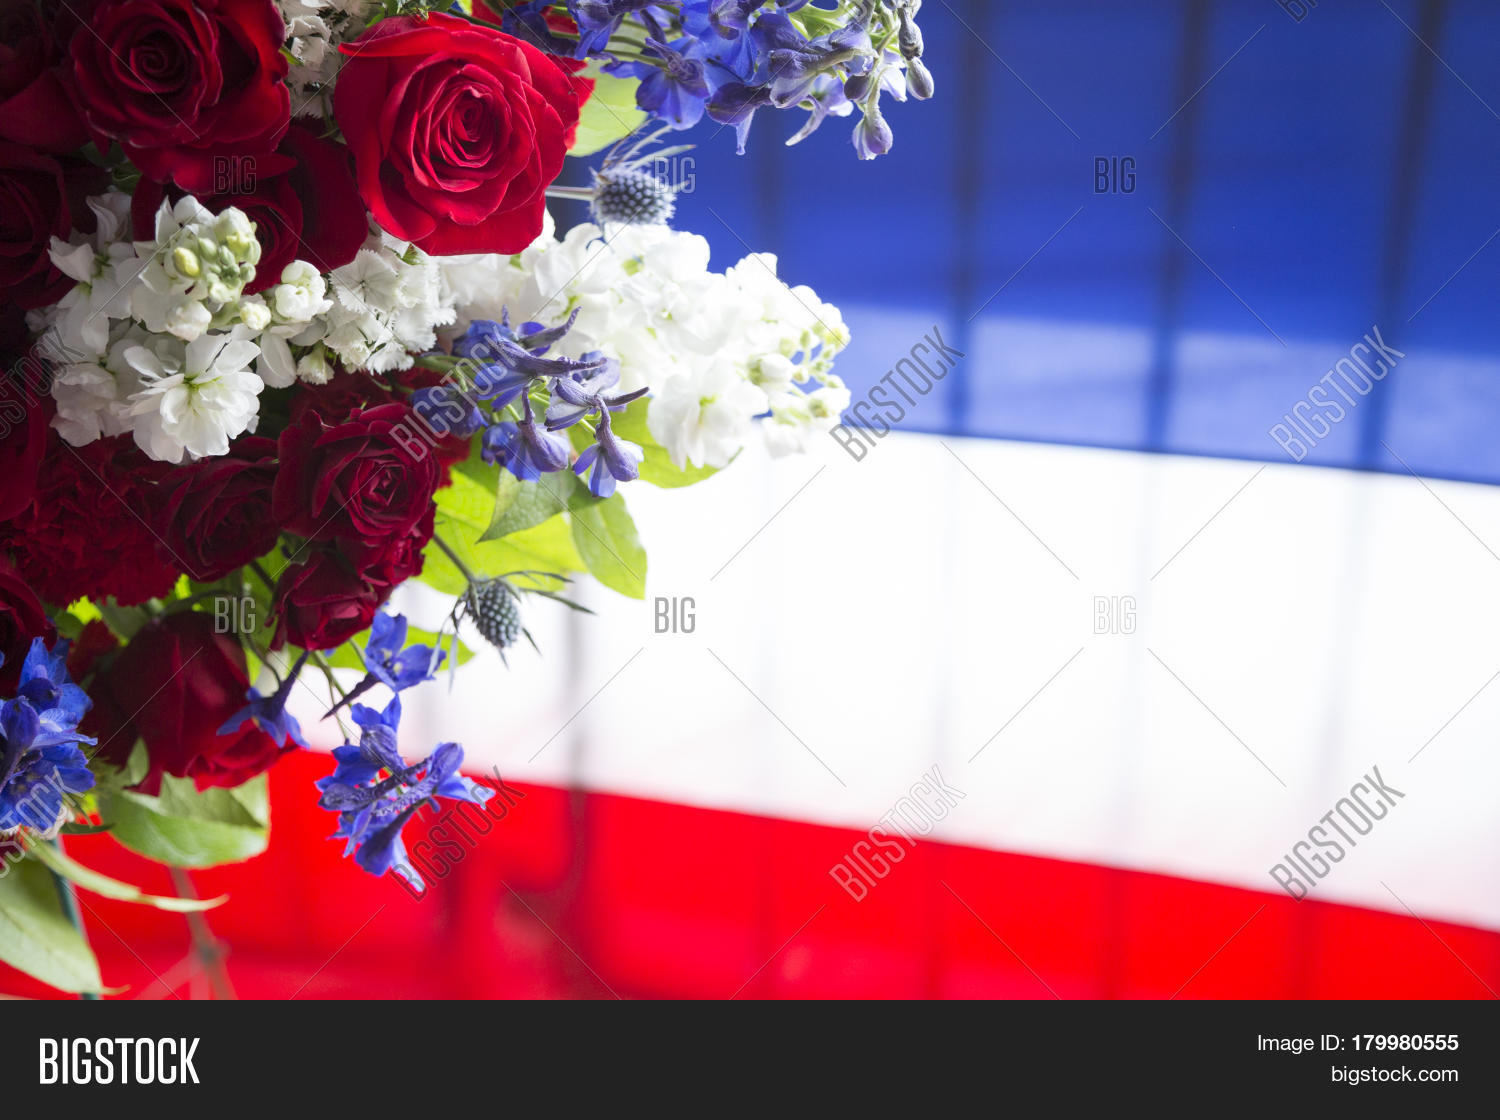 Red white blue flowers ceremonial image photo bigstock red white and blue flowers from a ceremonial wreath in honor and remembrance izmirmasajfo Gallery